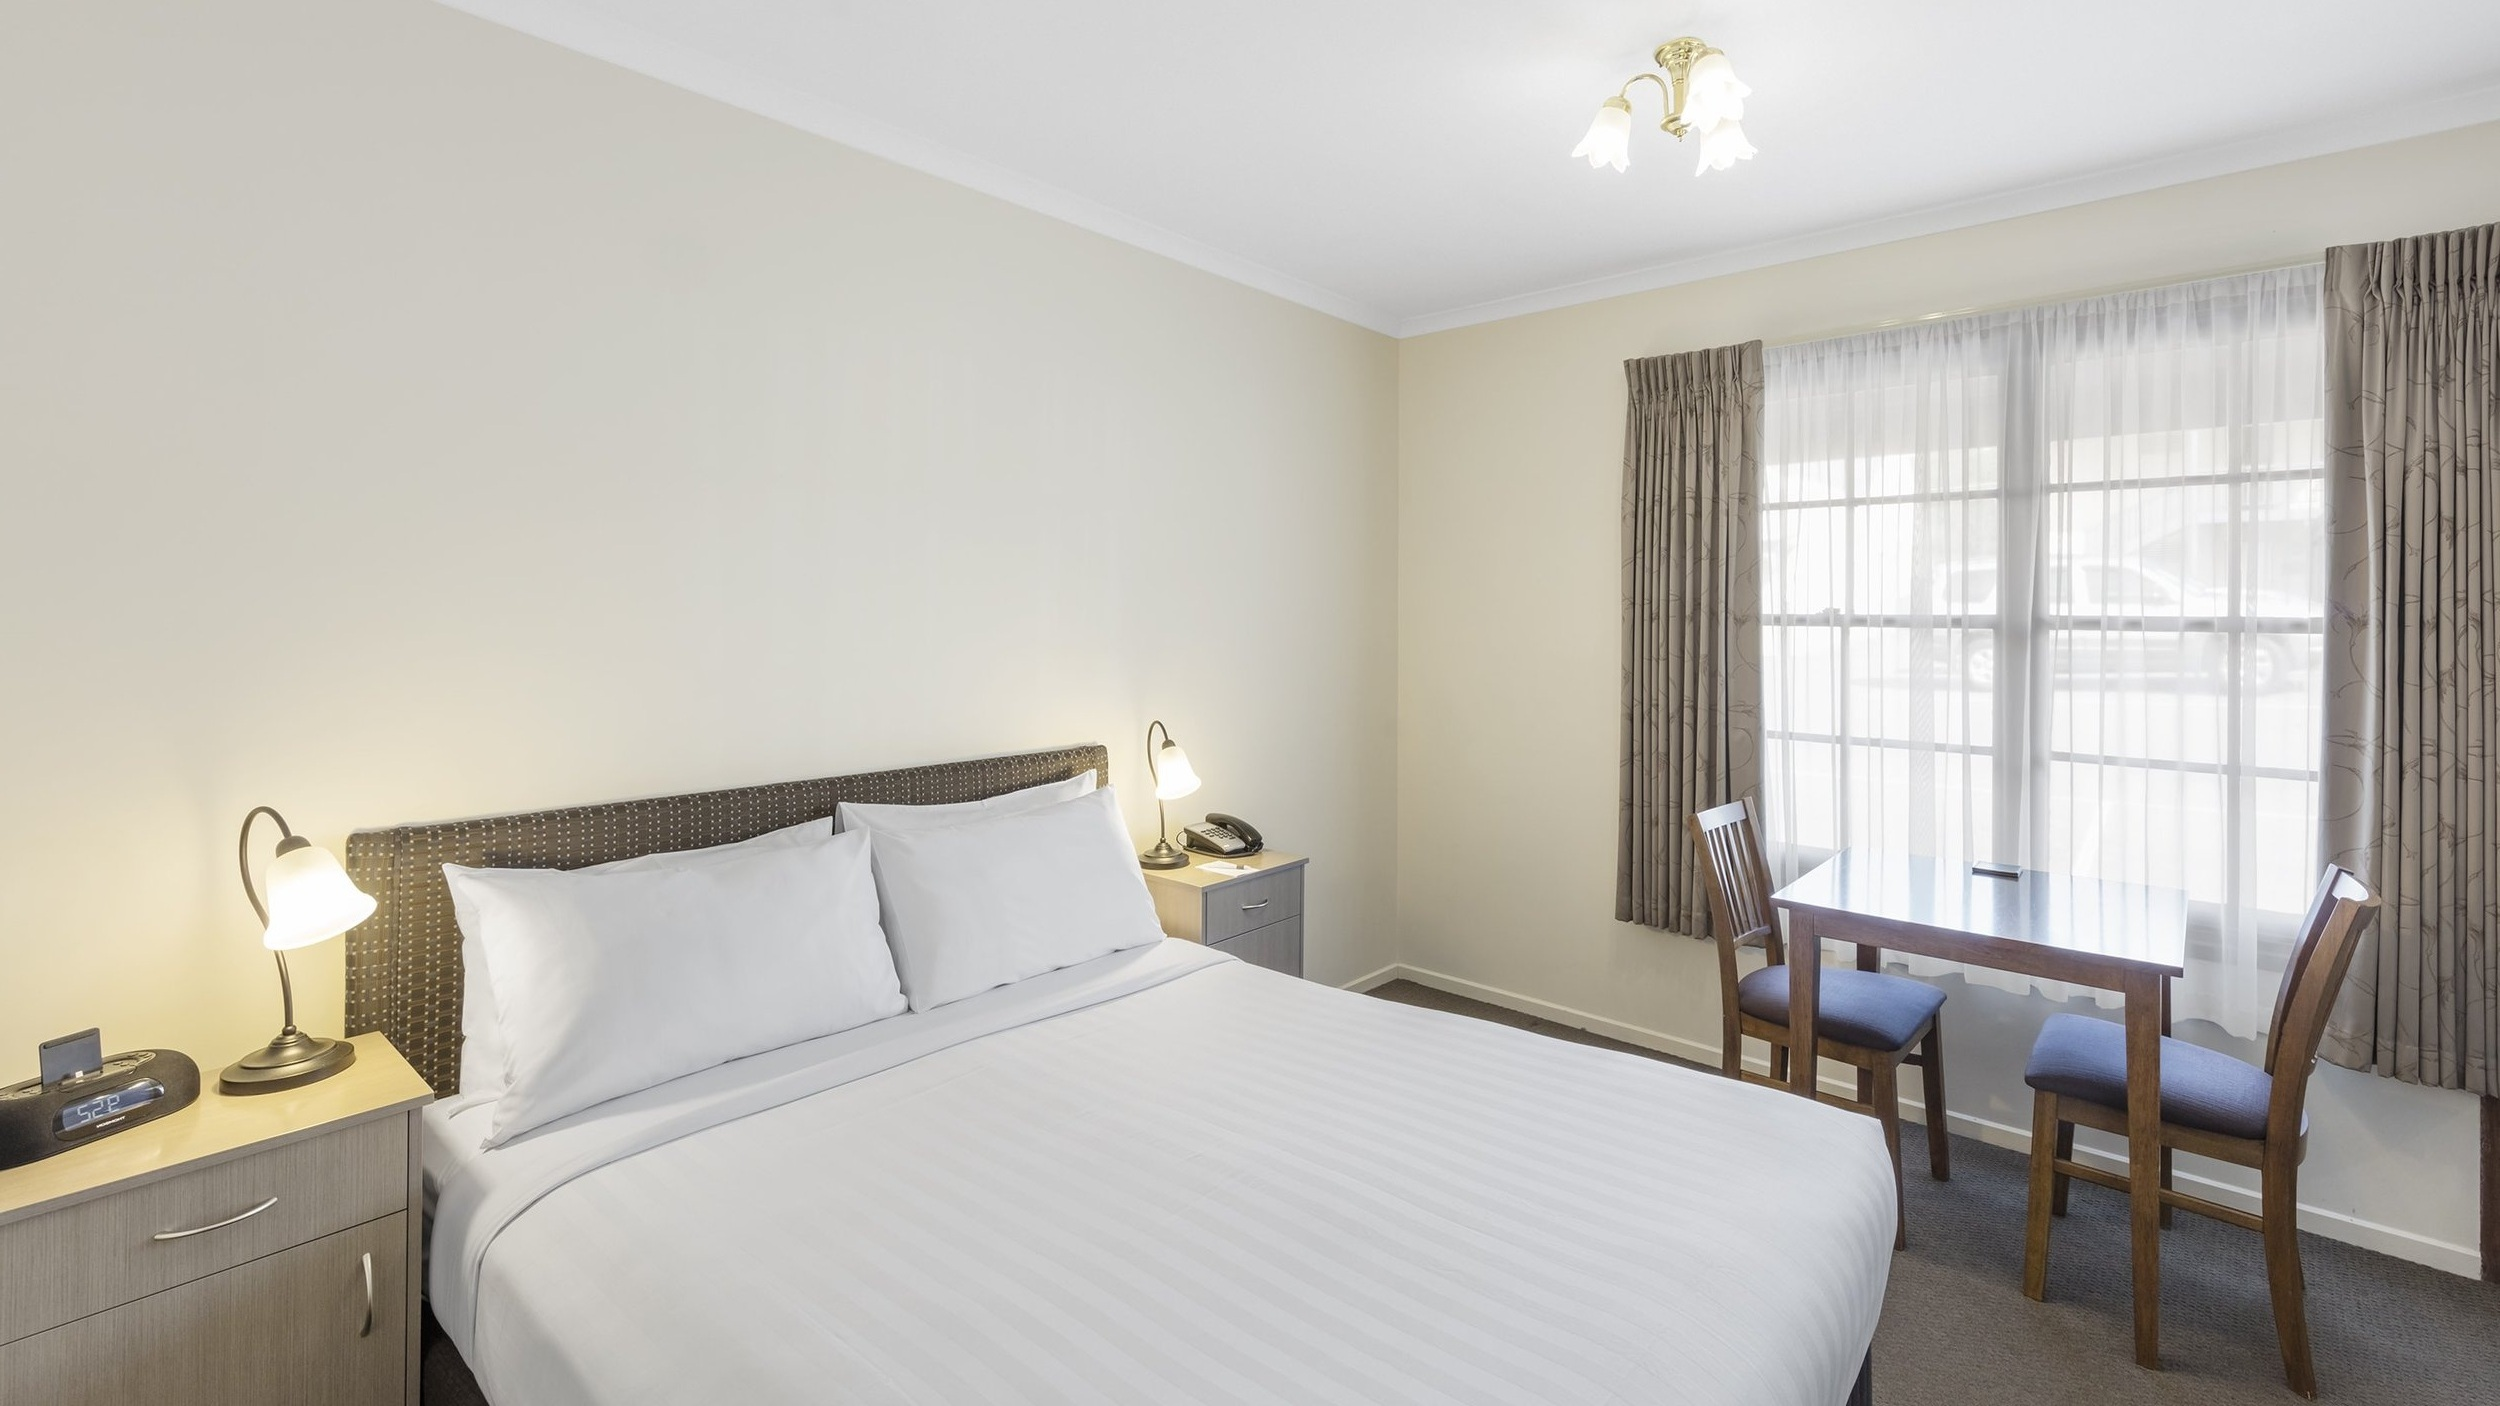 Standard Queen - A comfortable guest room ideal for solo travellers or a couple, with 1 x queen bed and a private ensuite.⨠ View Room Details